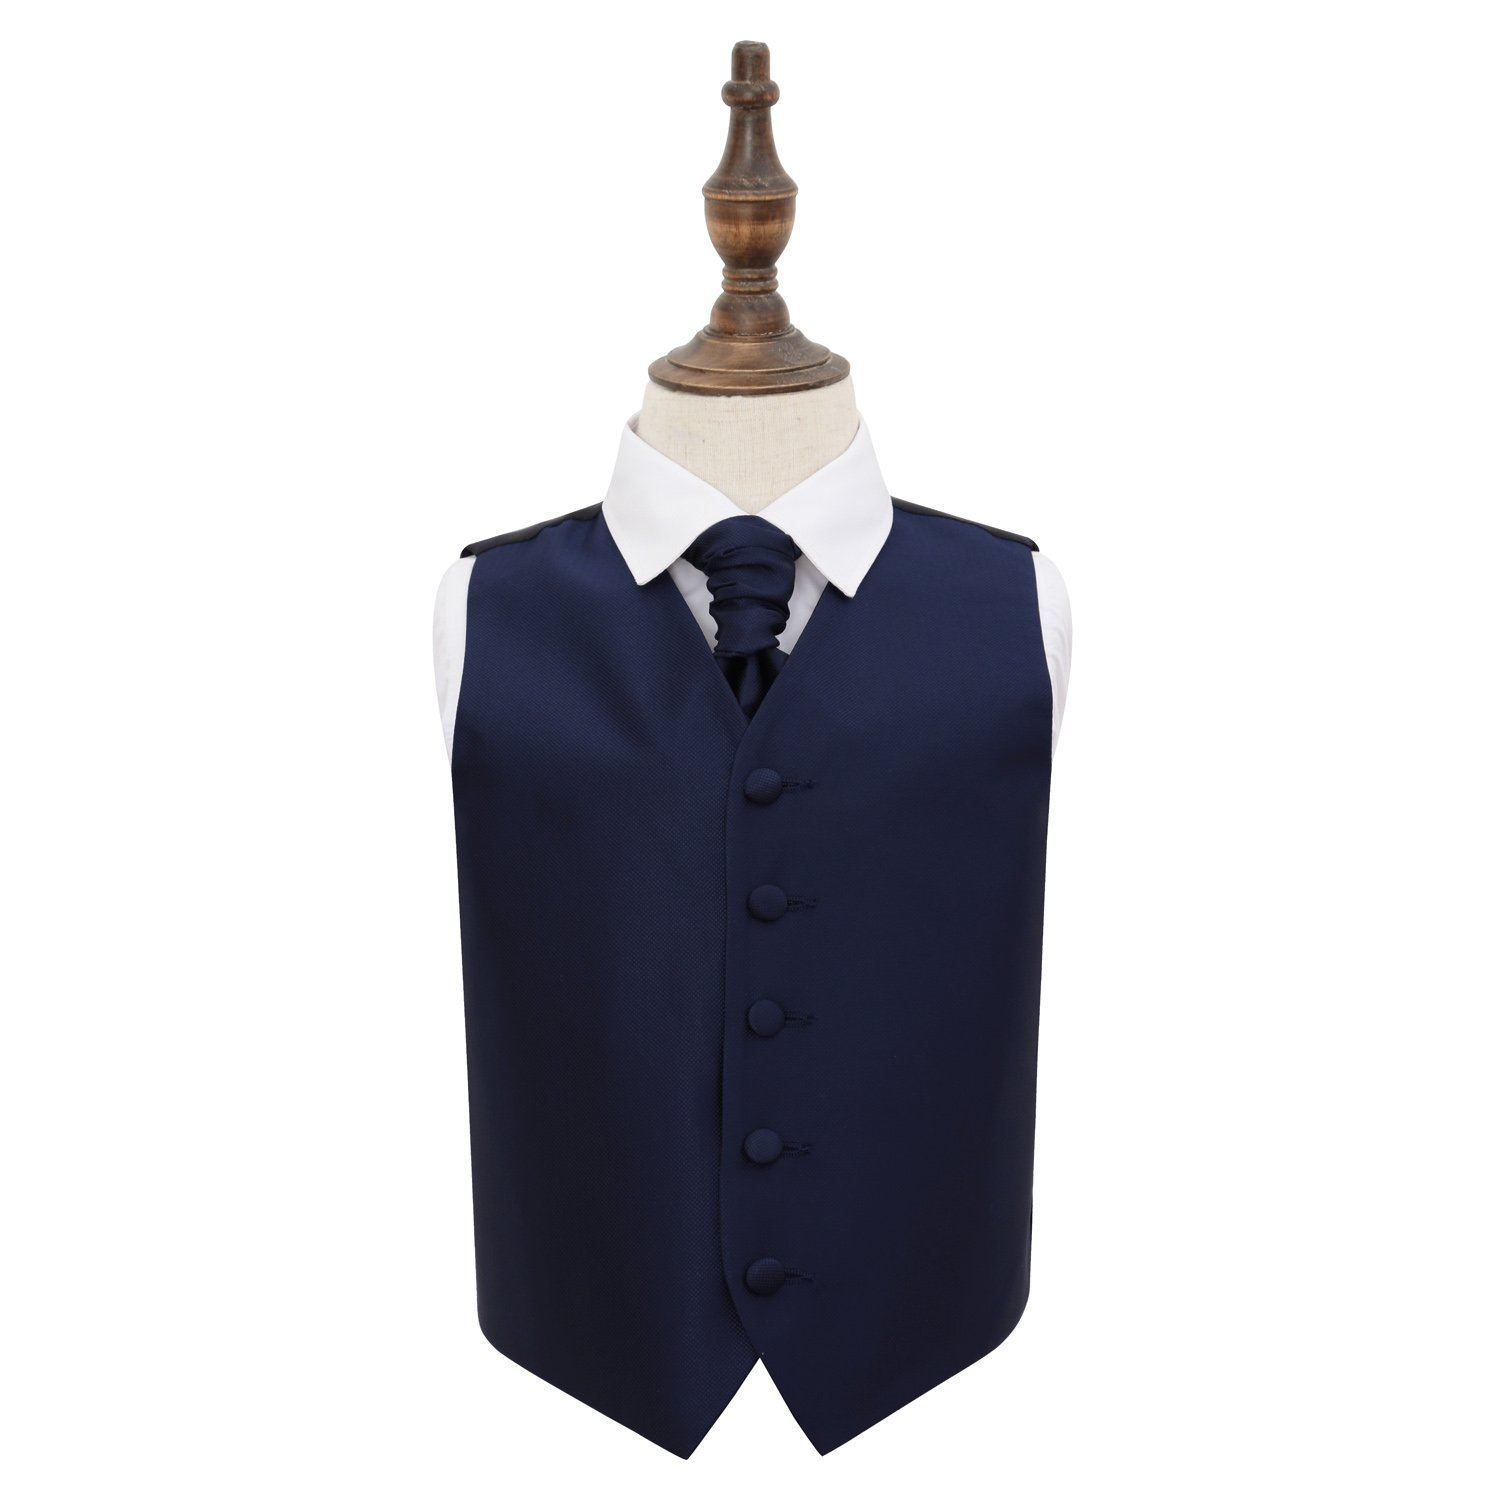 DQT Satin Plain Solid Royal Blue Mens Wedding Waistcoat /& Cravat Set